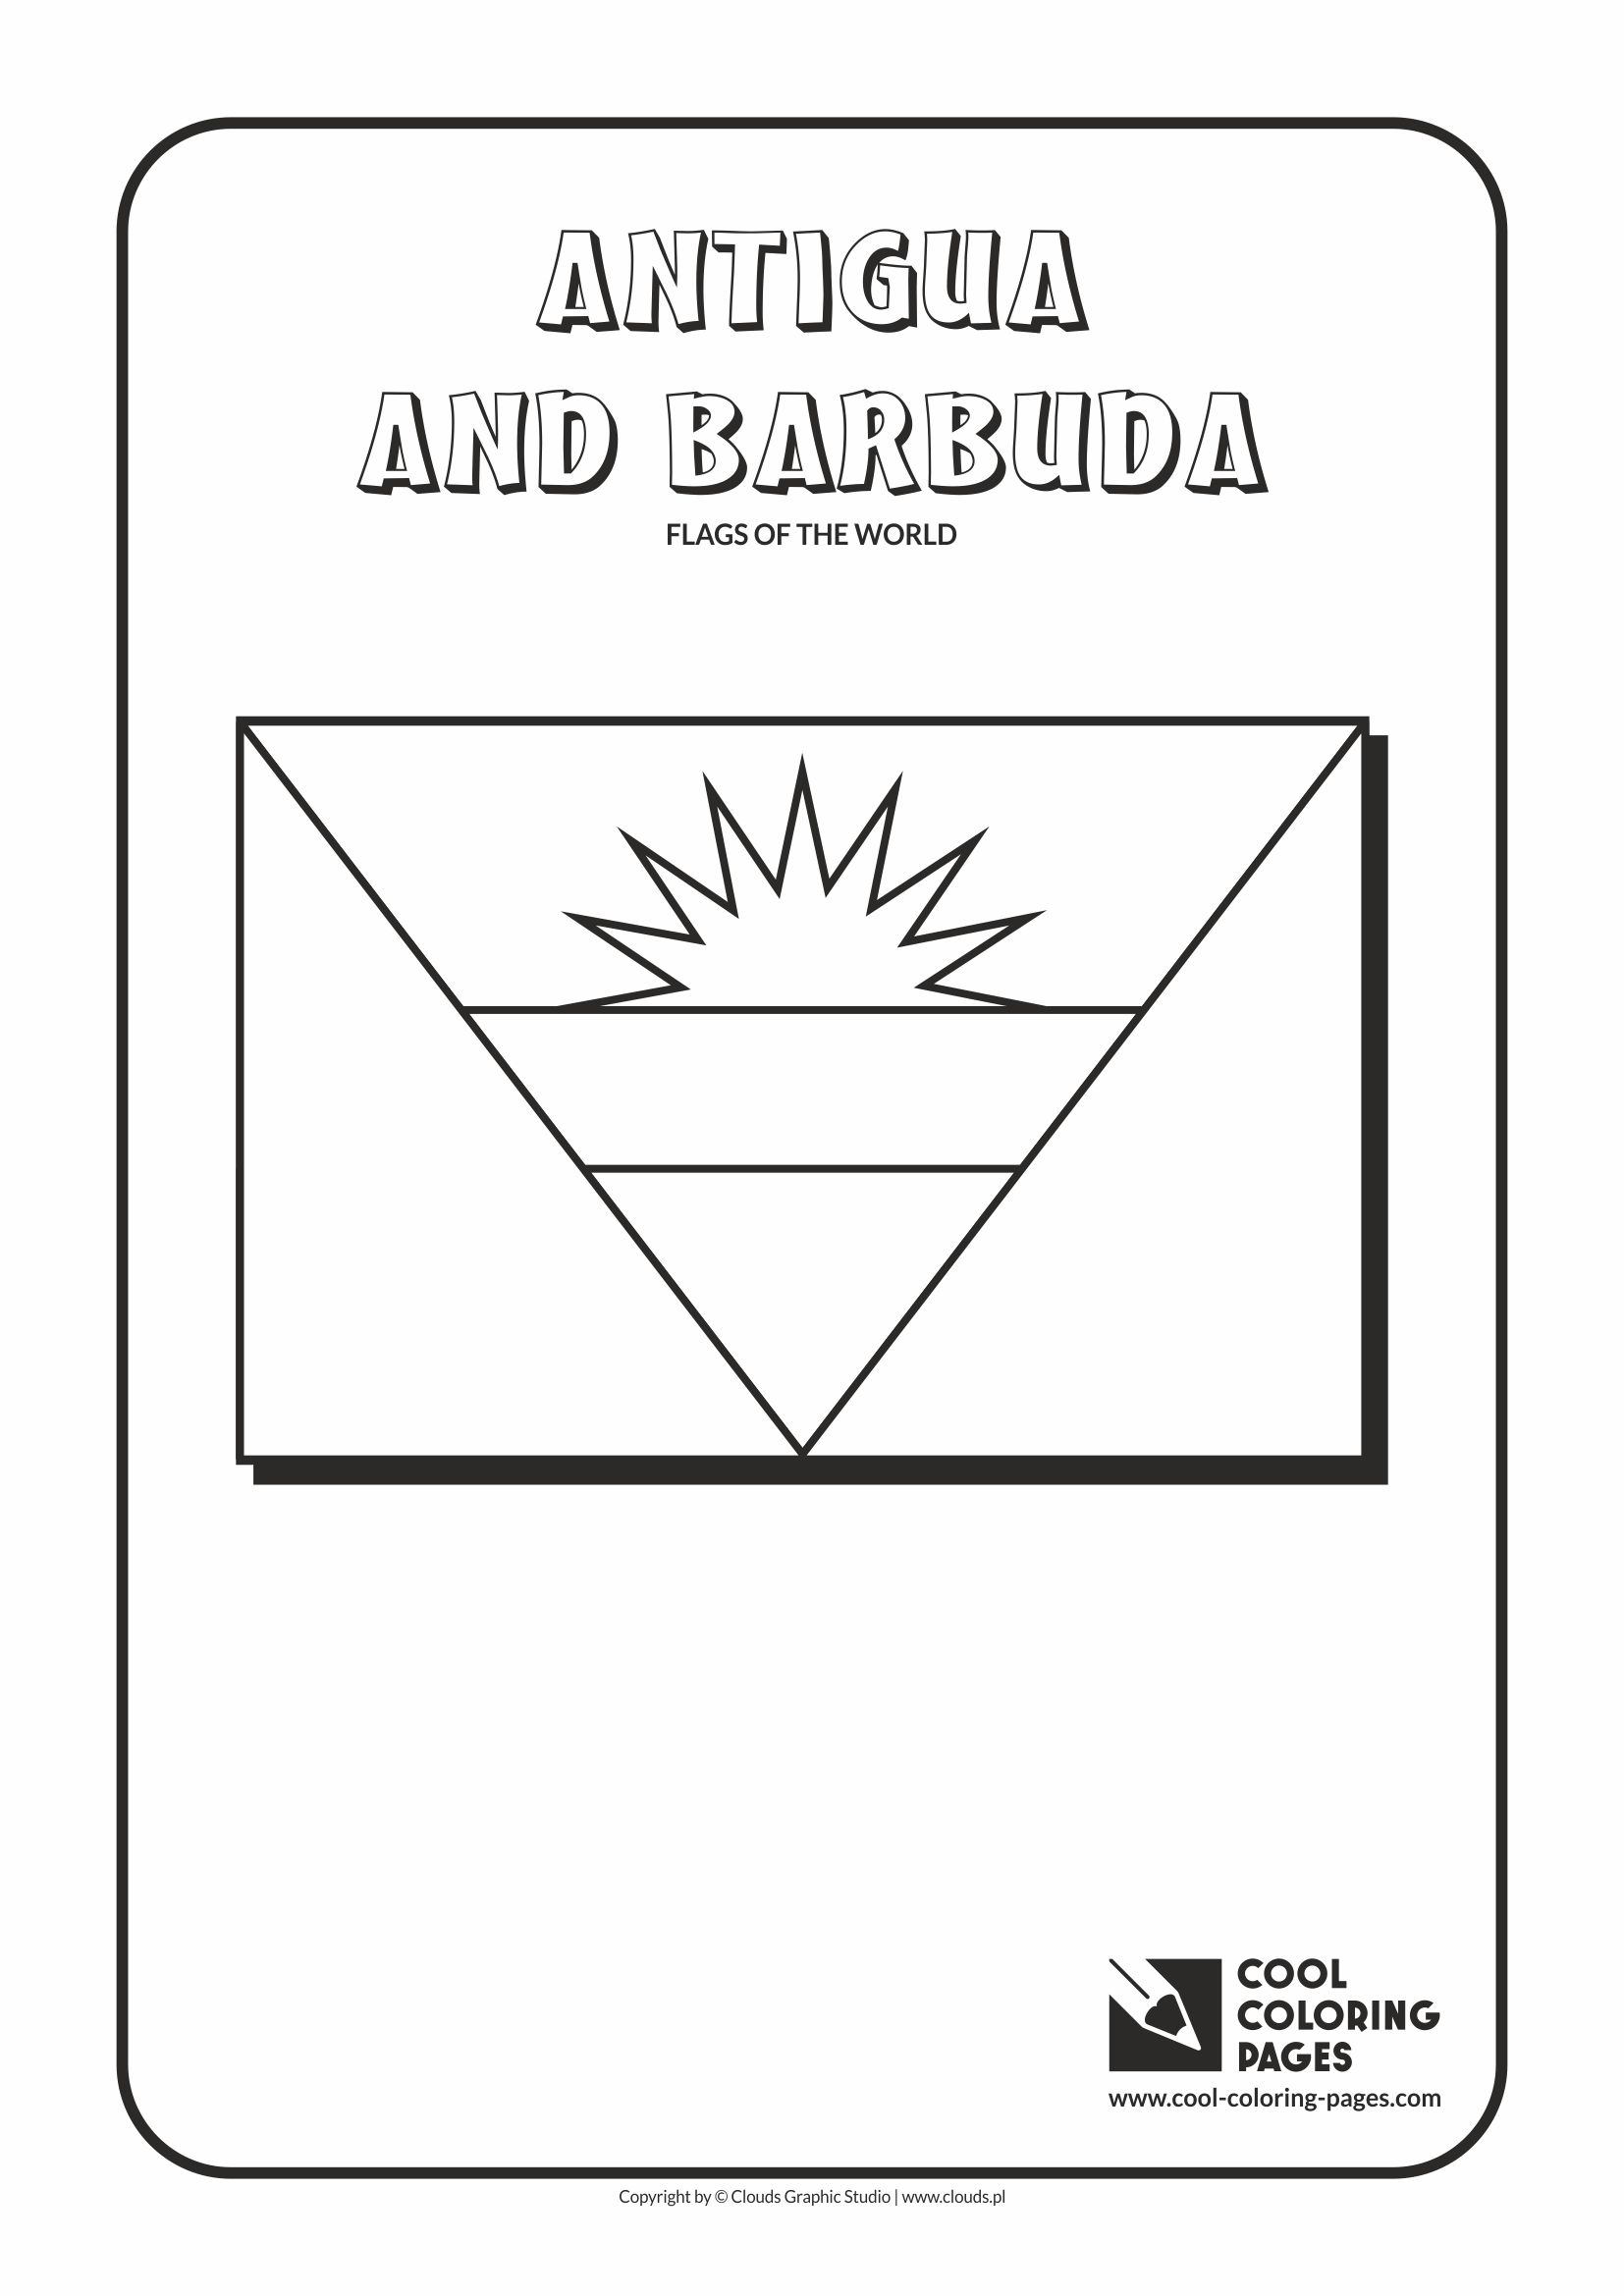 Cool Coloring Pages - Flags of the world / Antiqua and barbuda flag